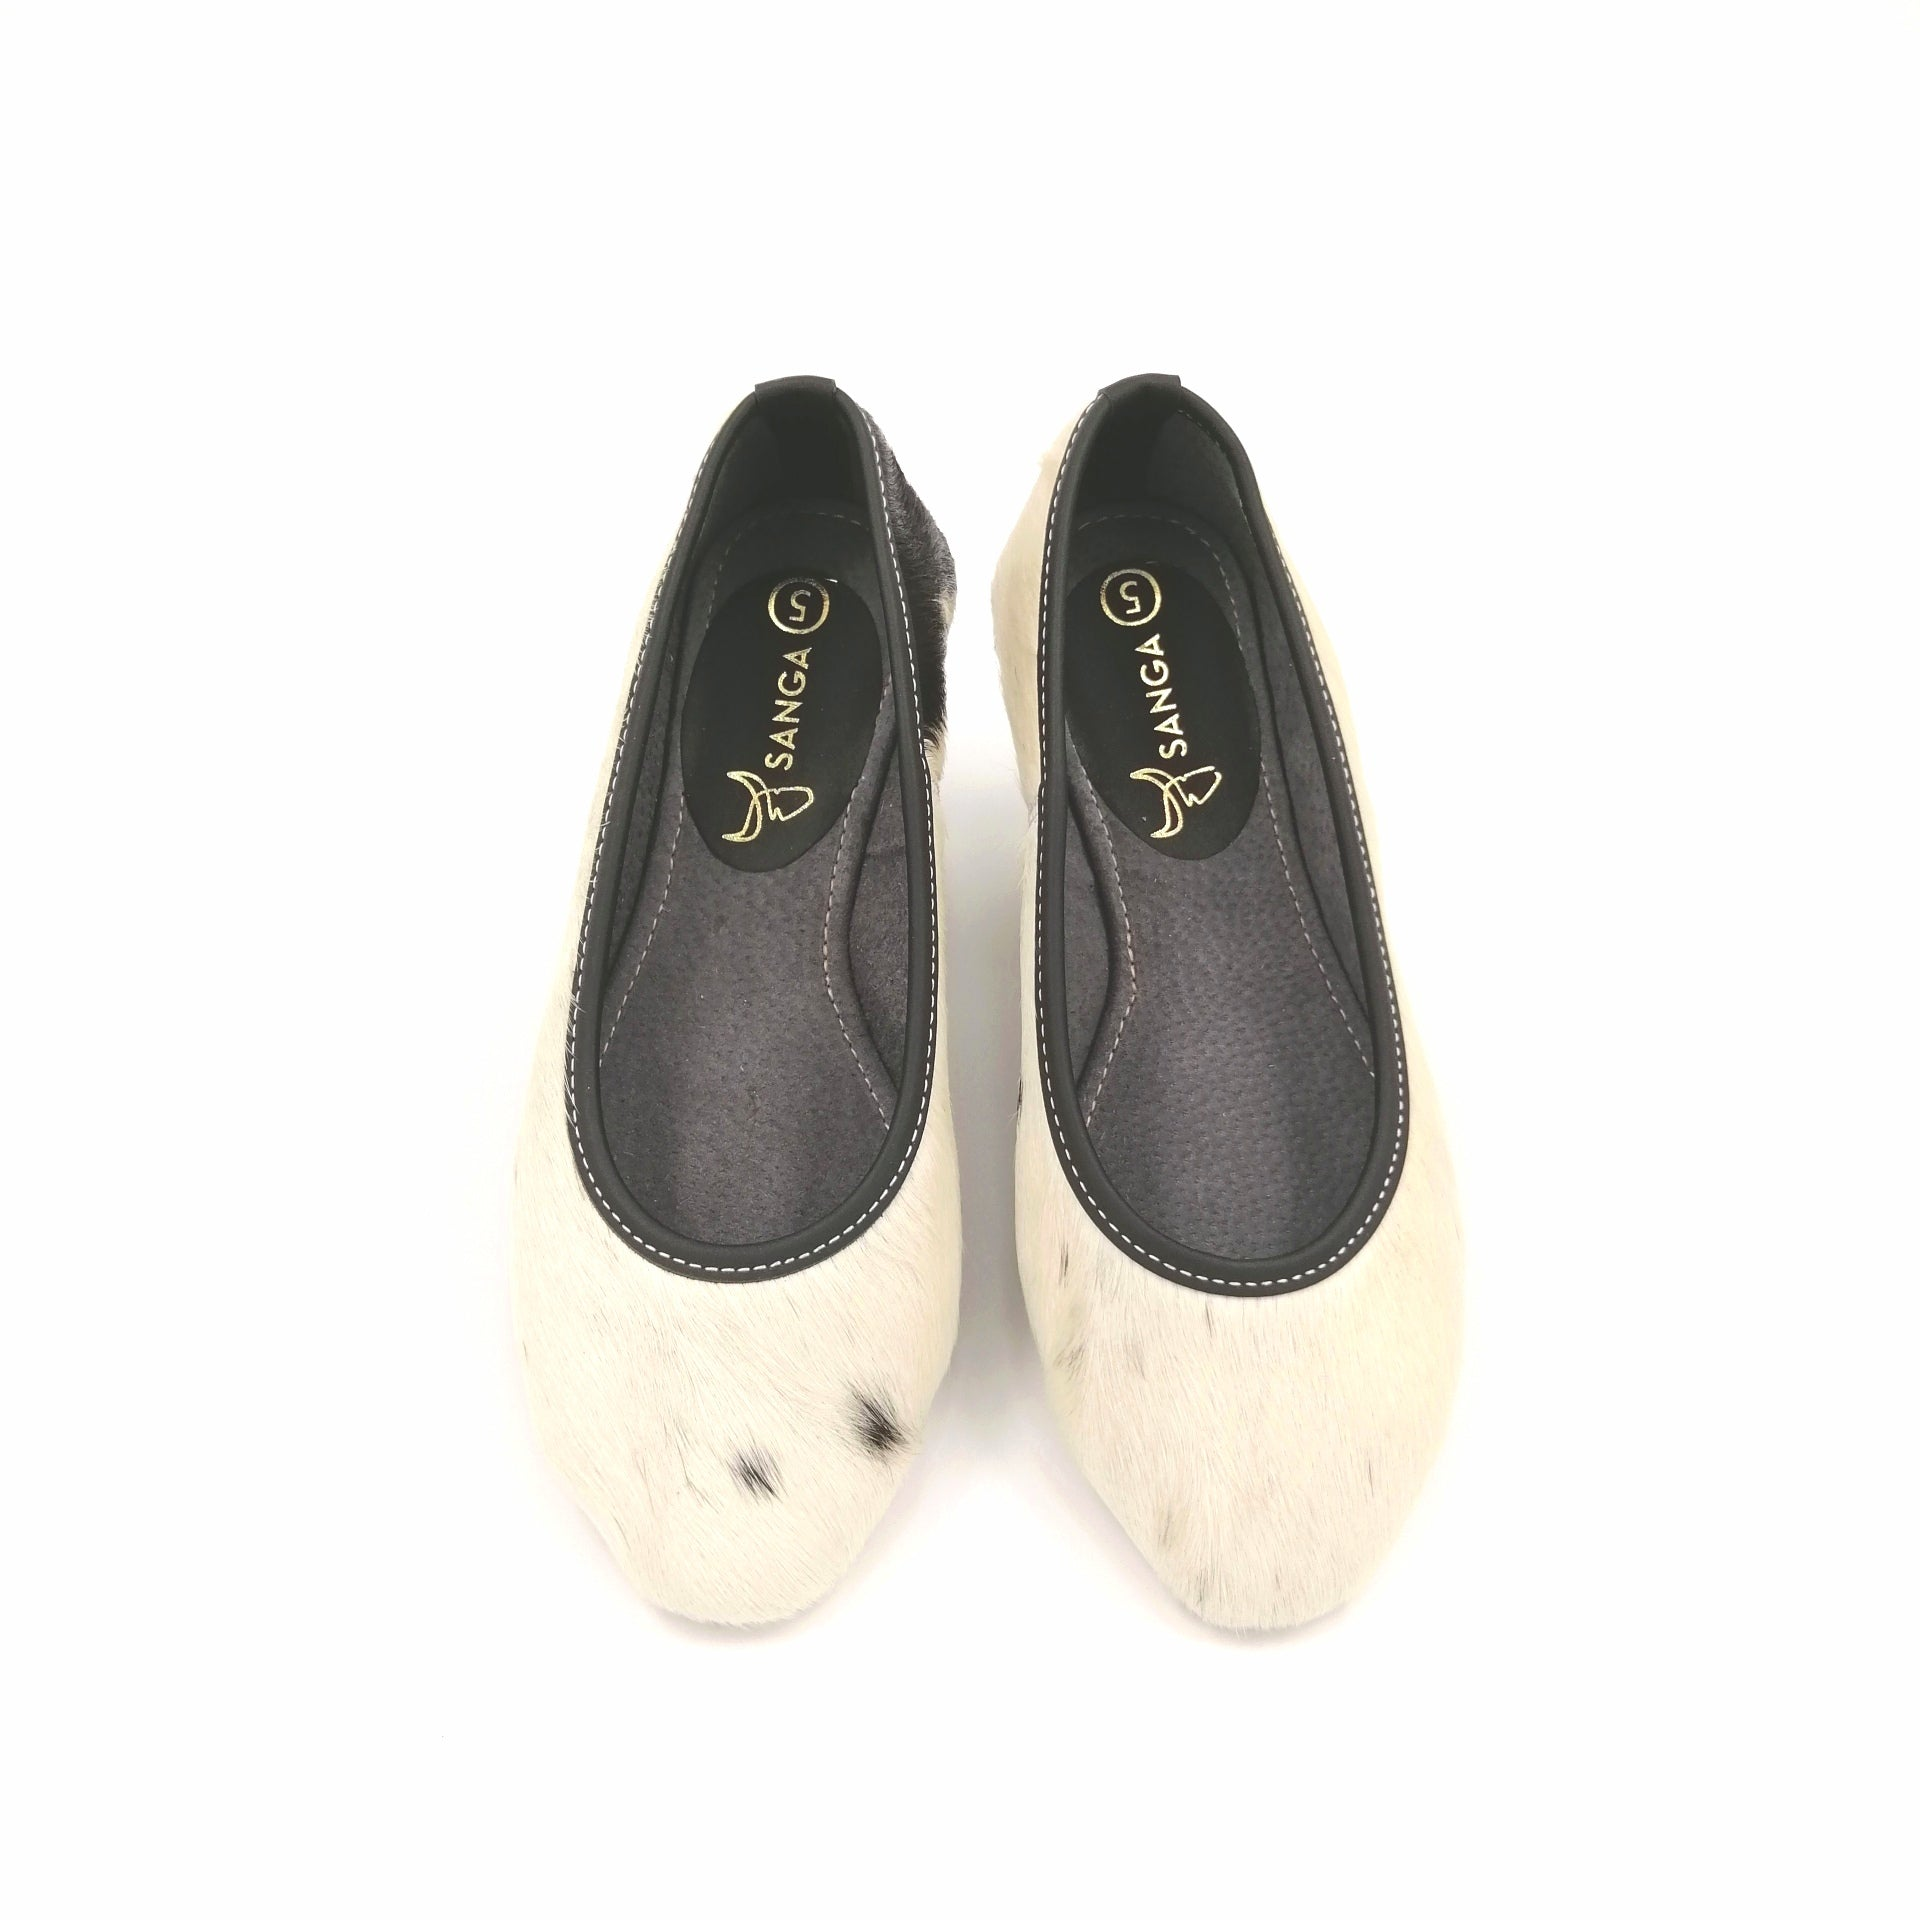 Pumps - SC20-PUM05-03 - Size 5